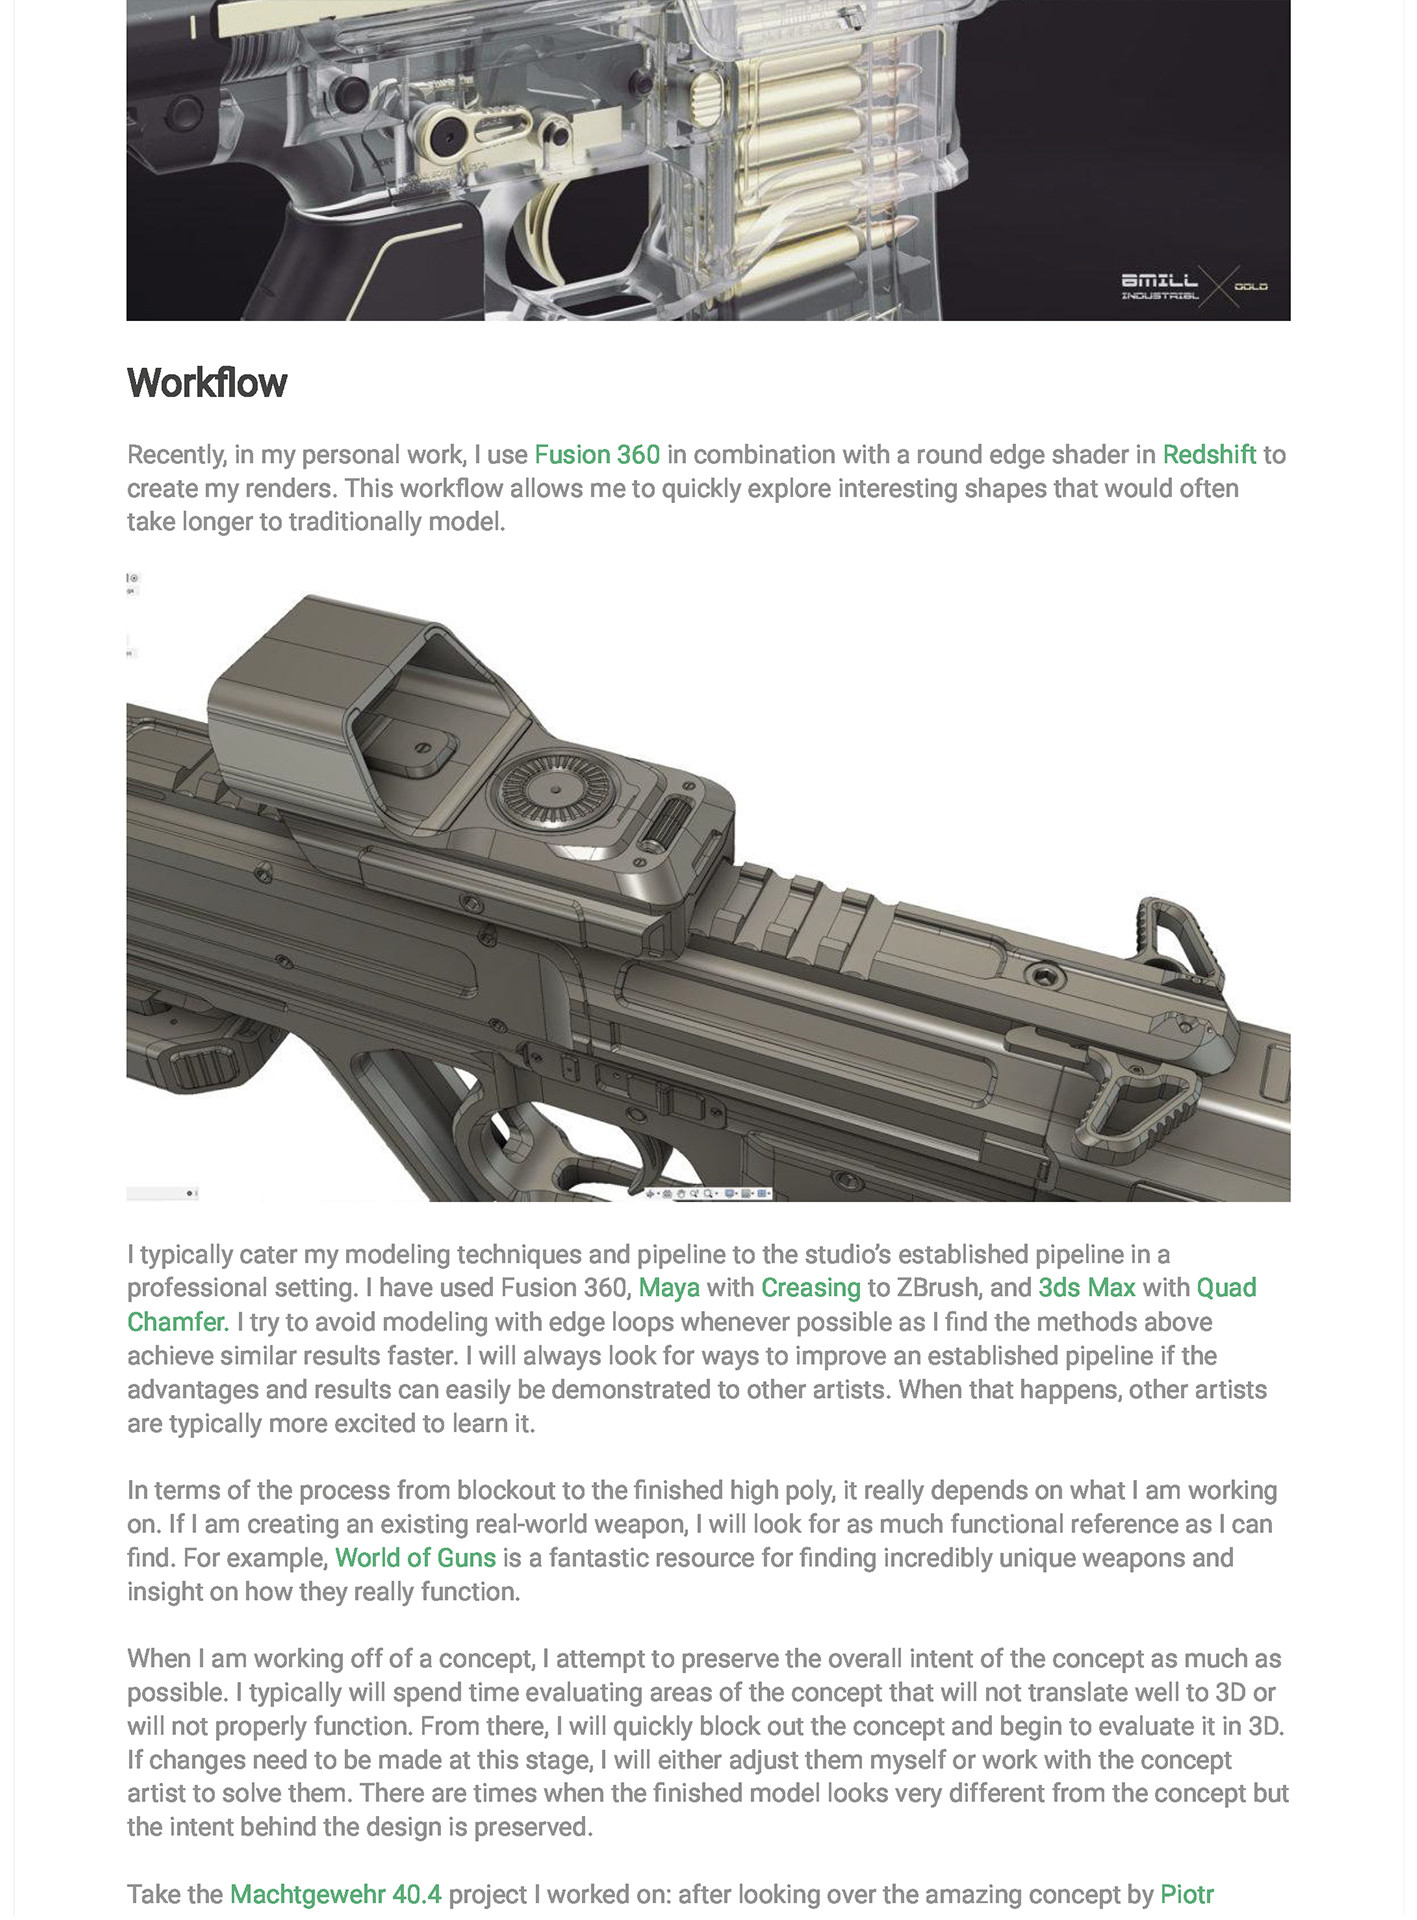 Chris stone experimenting with weapon design page 03